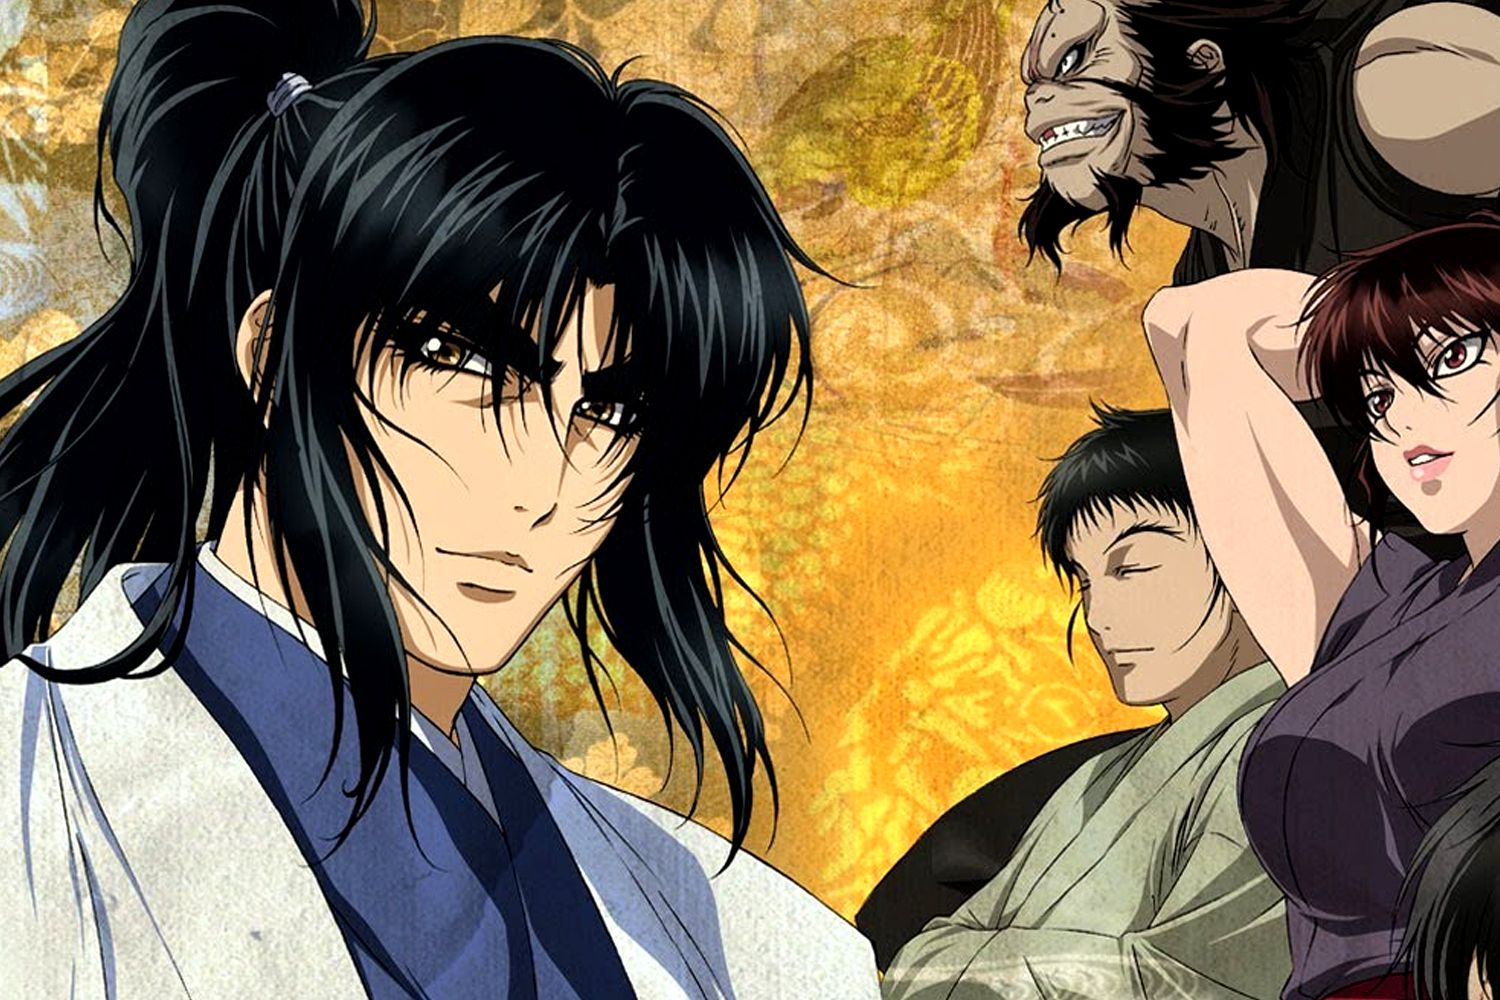 The Best Samurai Anime Series and Movies